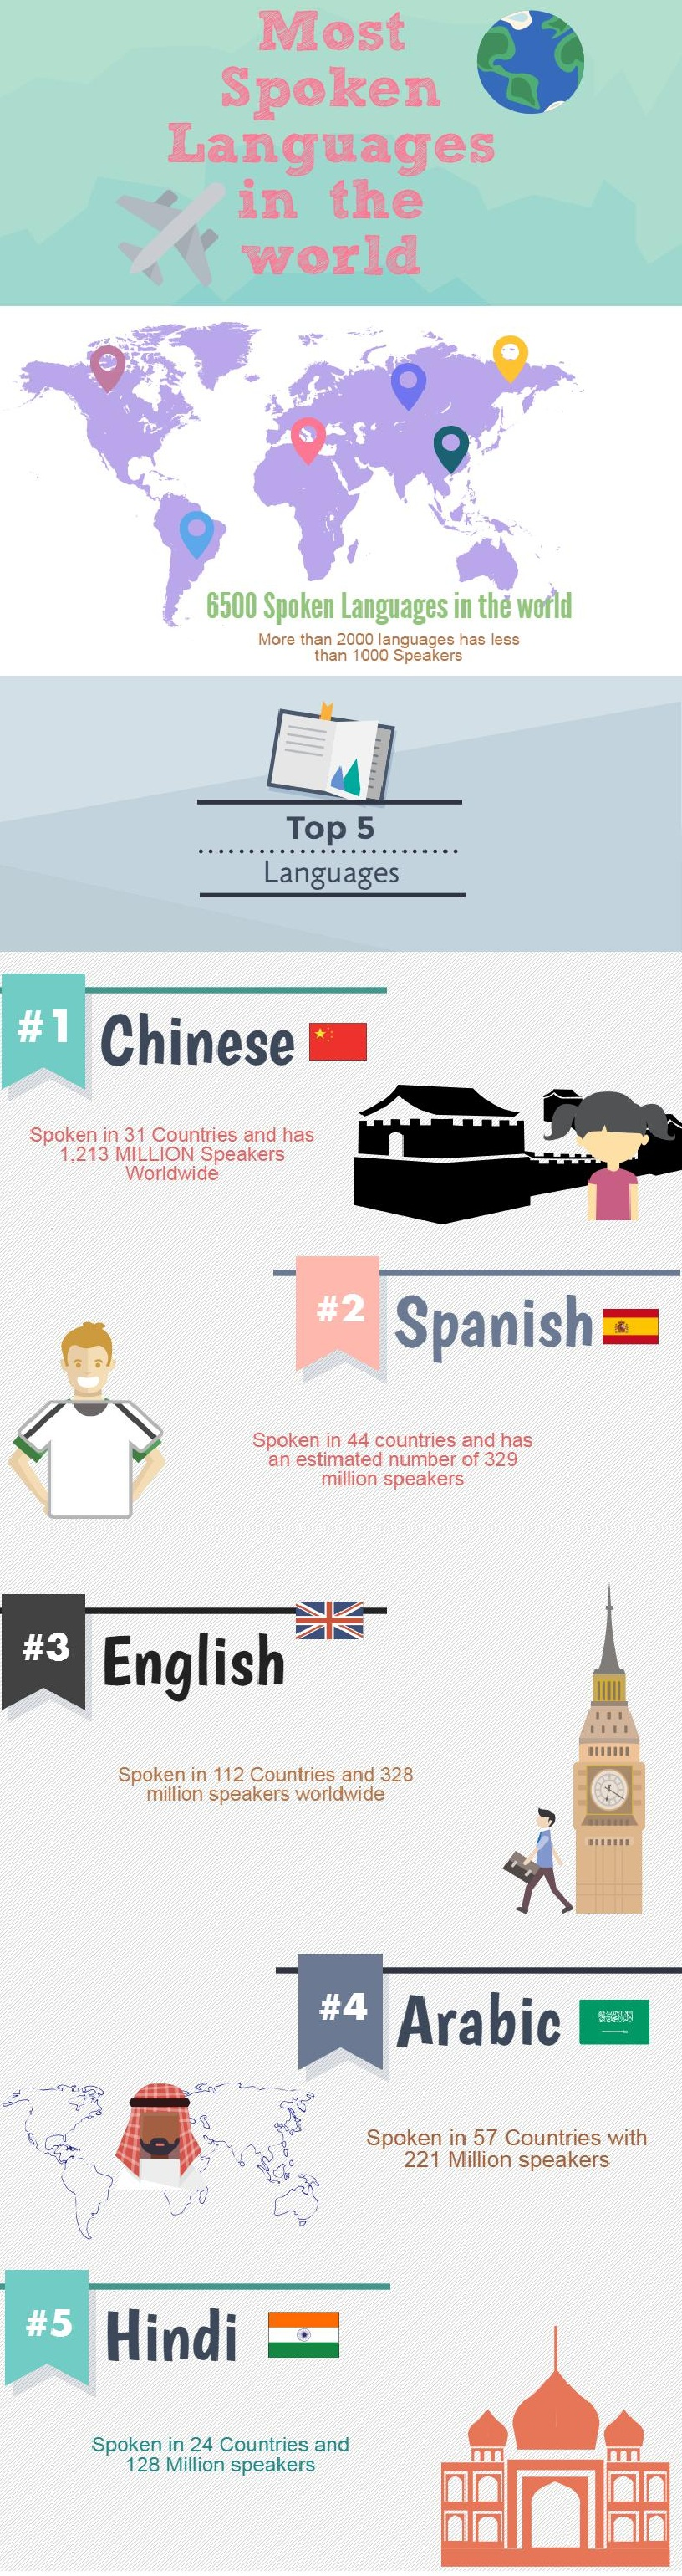 Most Spoken Languages In The World Infographic Elite Asia - World of languages infographic